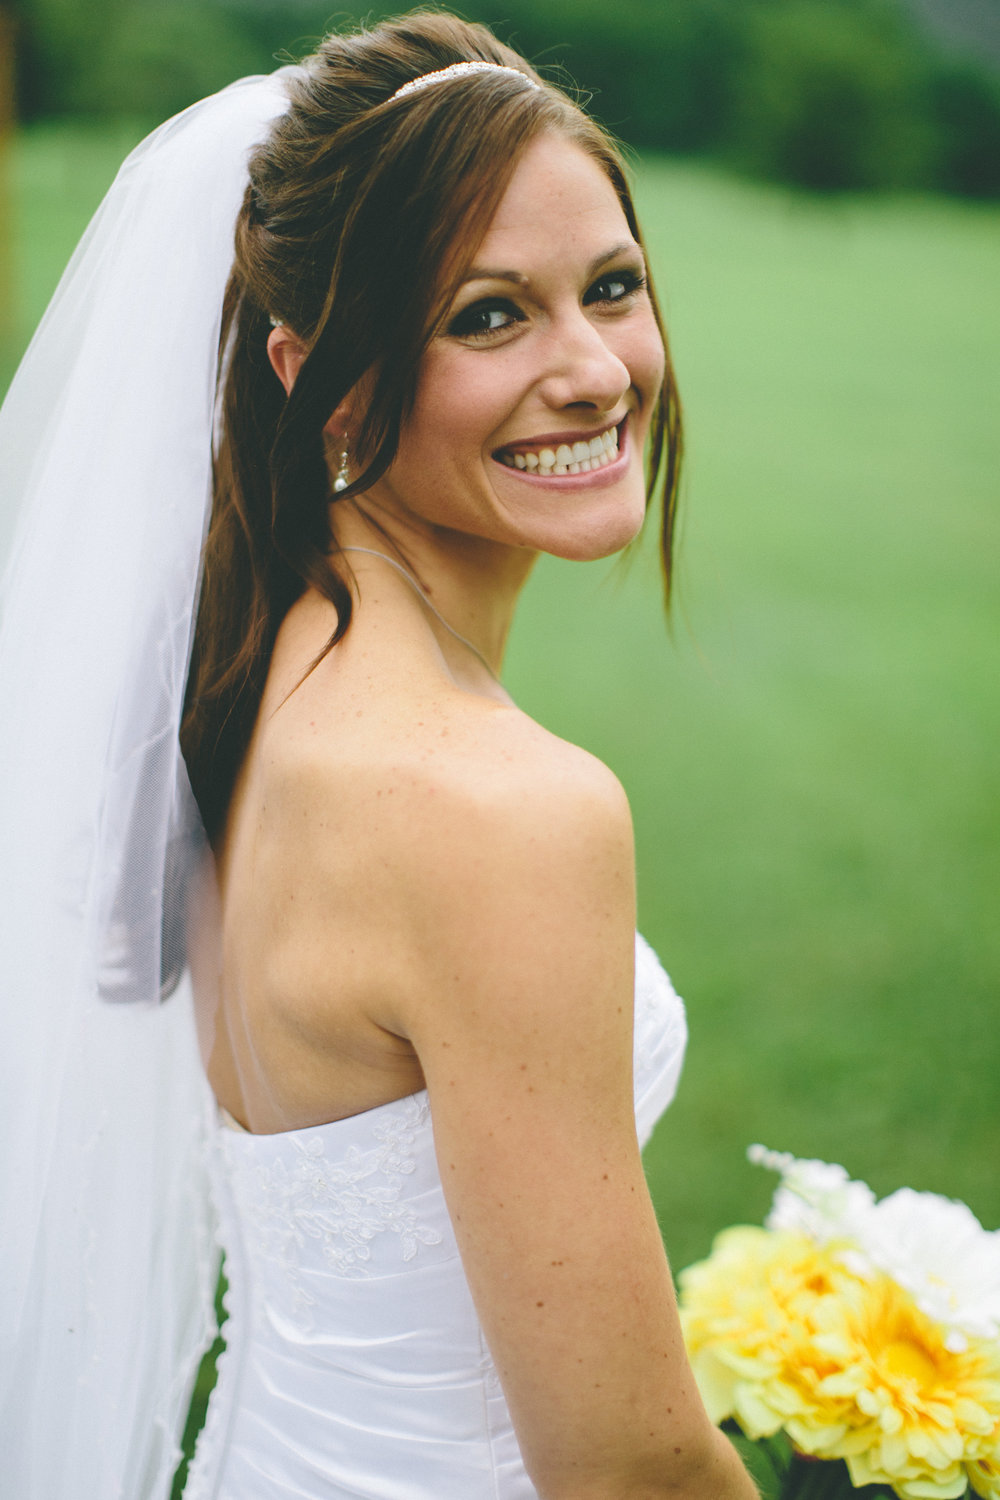 dianne_pete_wedding-361.jpg